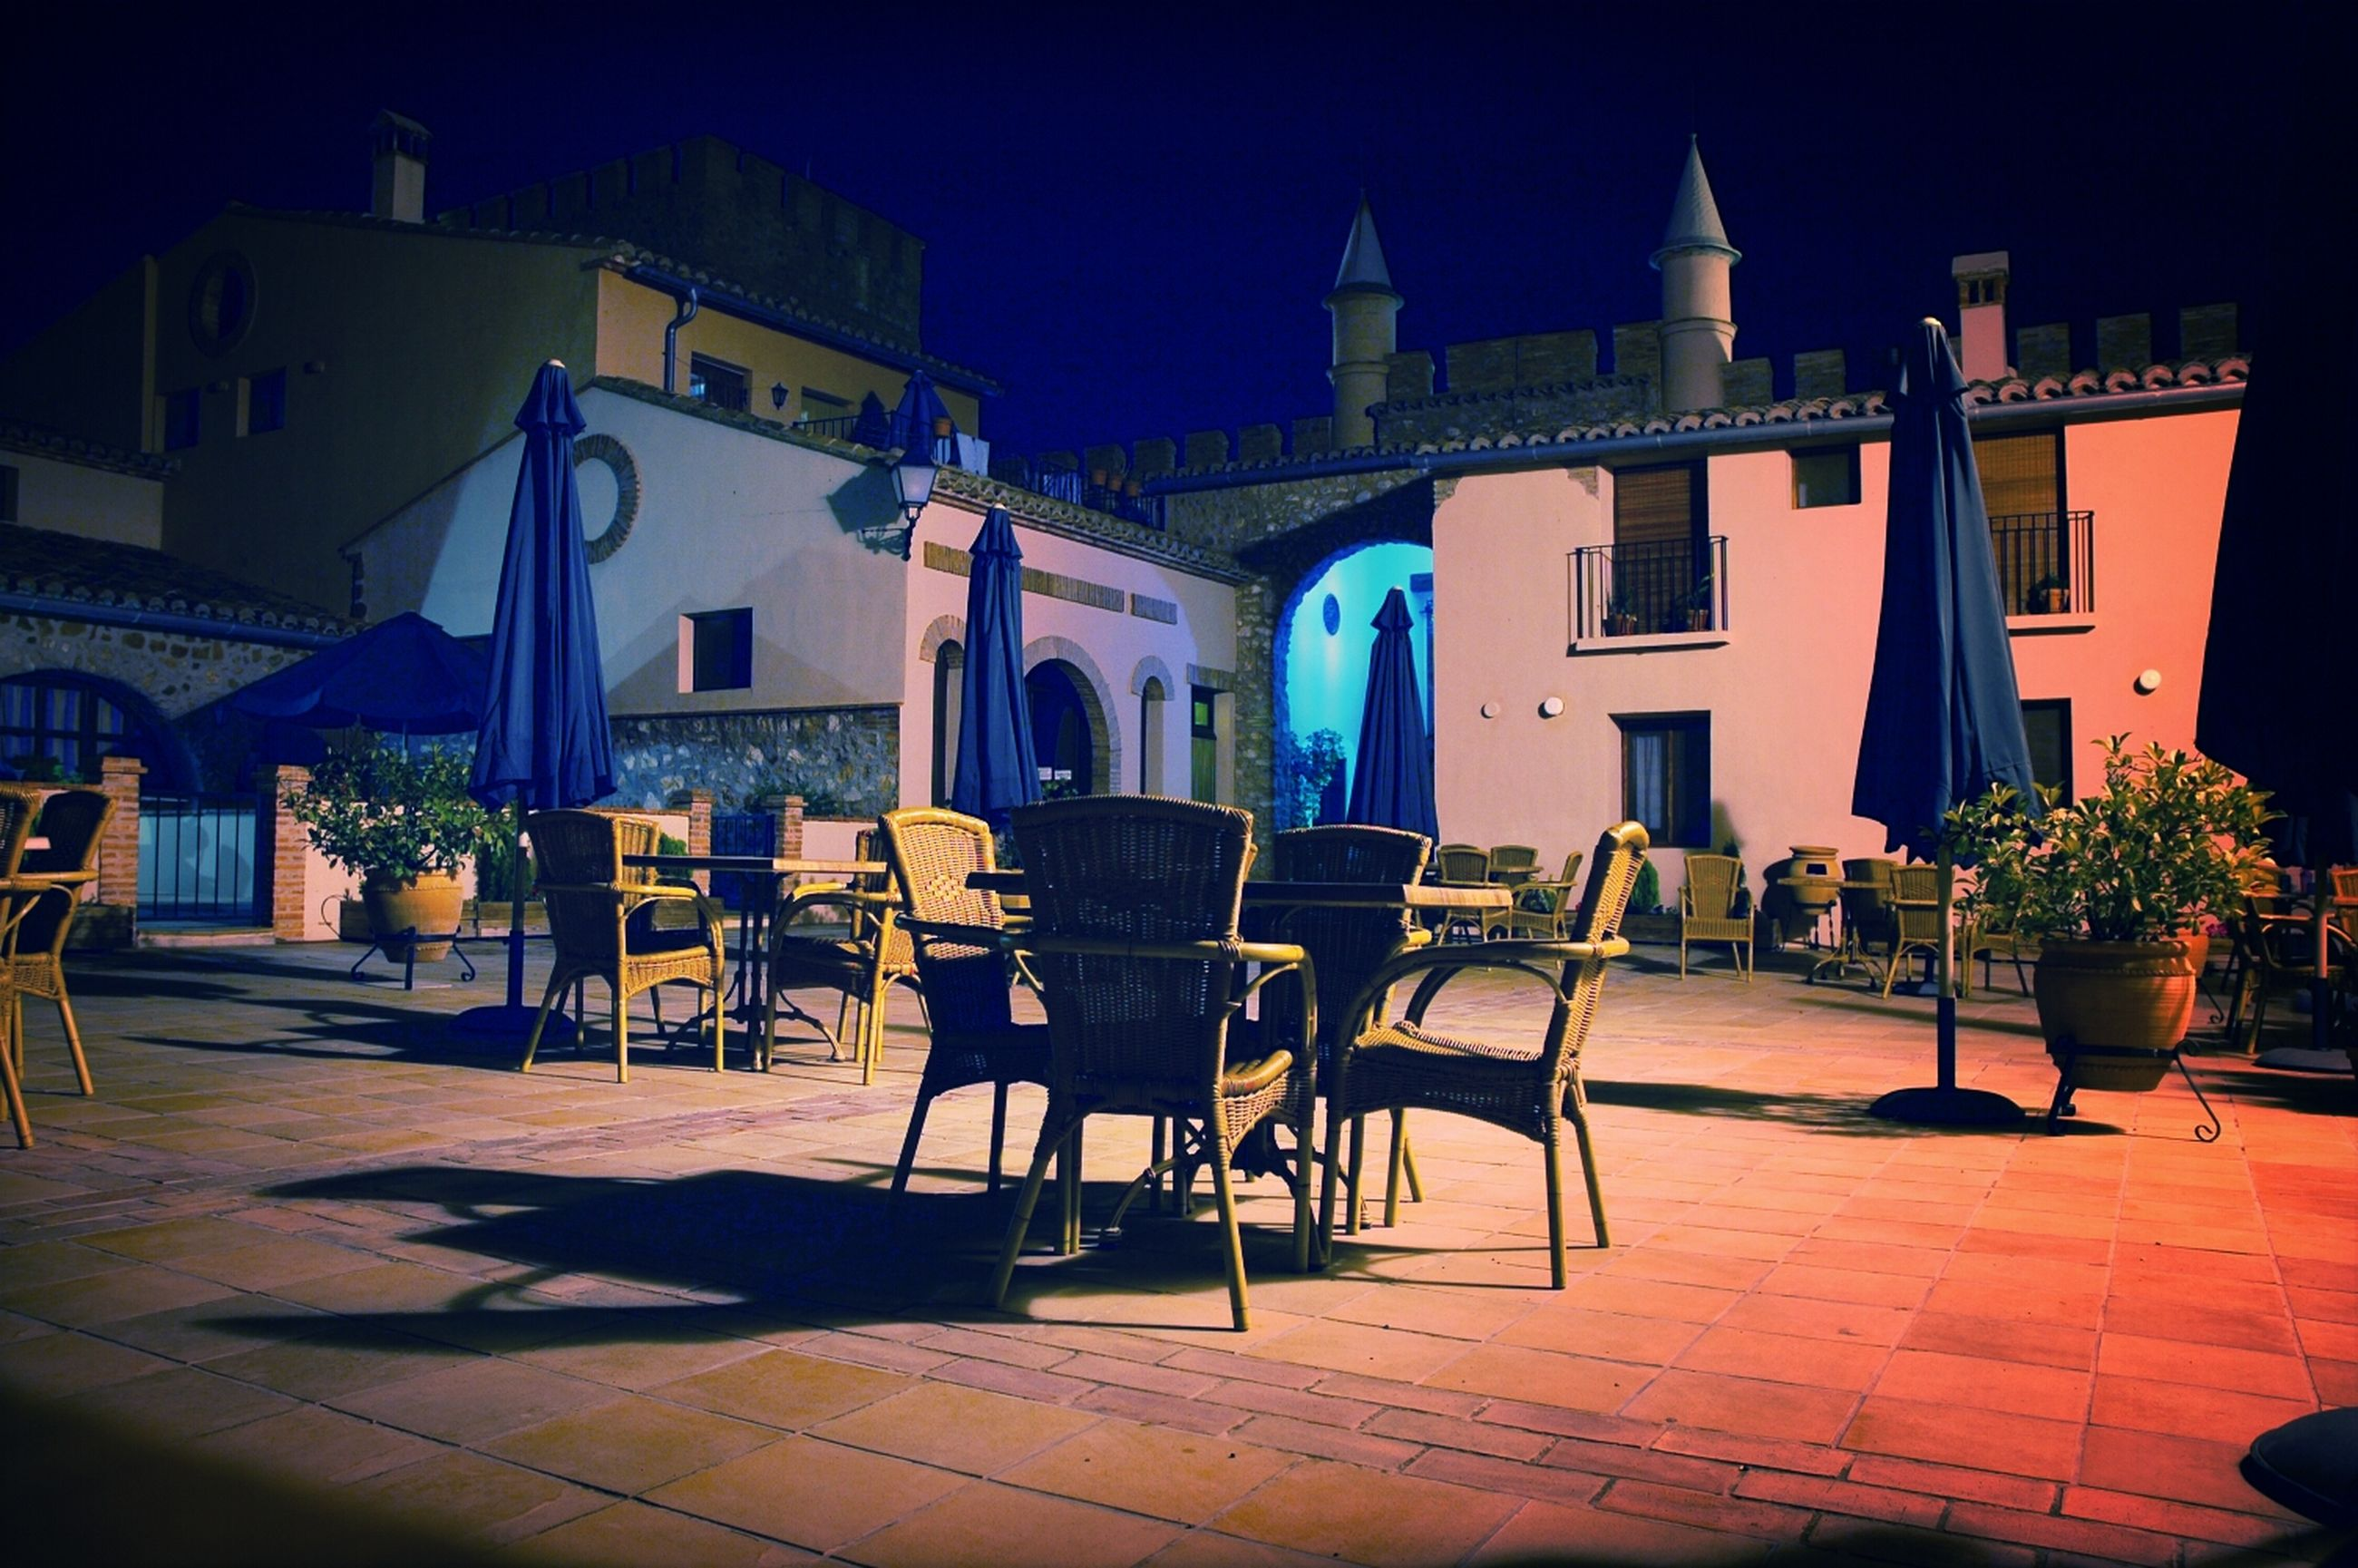 building exterior, architecture, built structure, chair, house, sunlight, residential building, night, residential structure, shadow, table, illuminated, potted plant, city, empty, cobblestone, street light, street, outdoors, blue